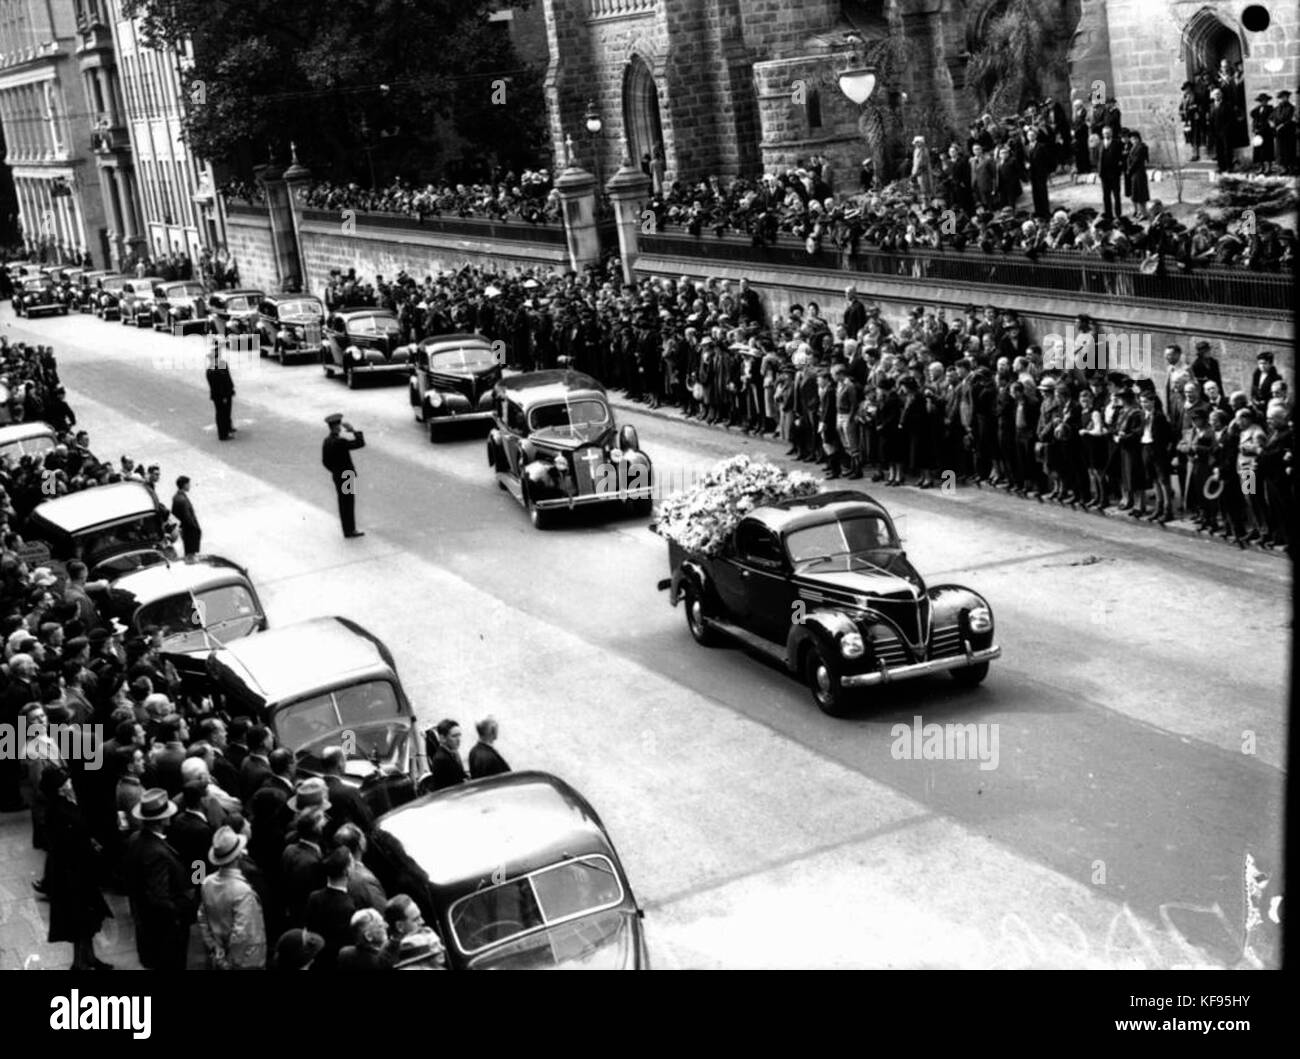 1 108176 Funeral procession for well respected judge, Hugh Macrossan, Brisbane, 1940 - Stock Image